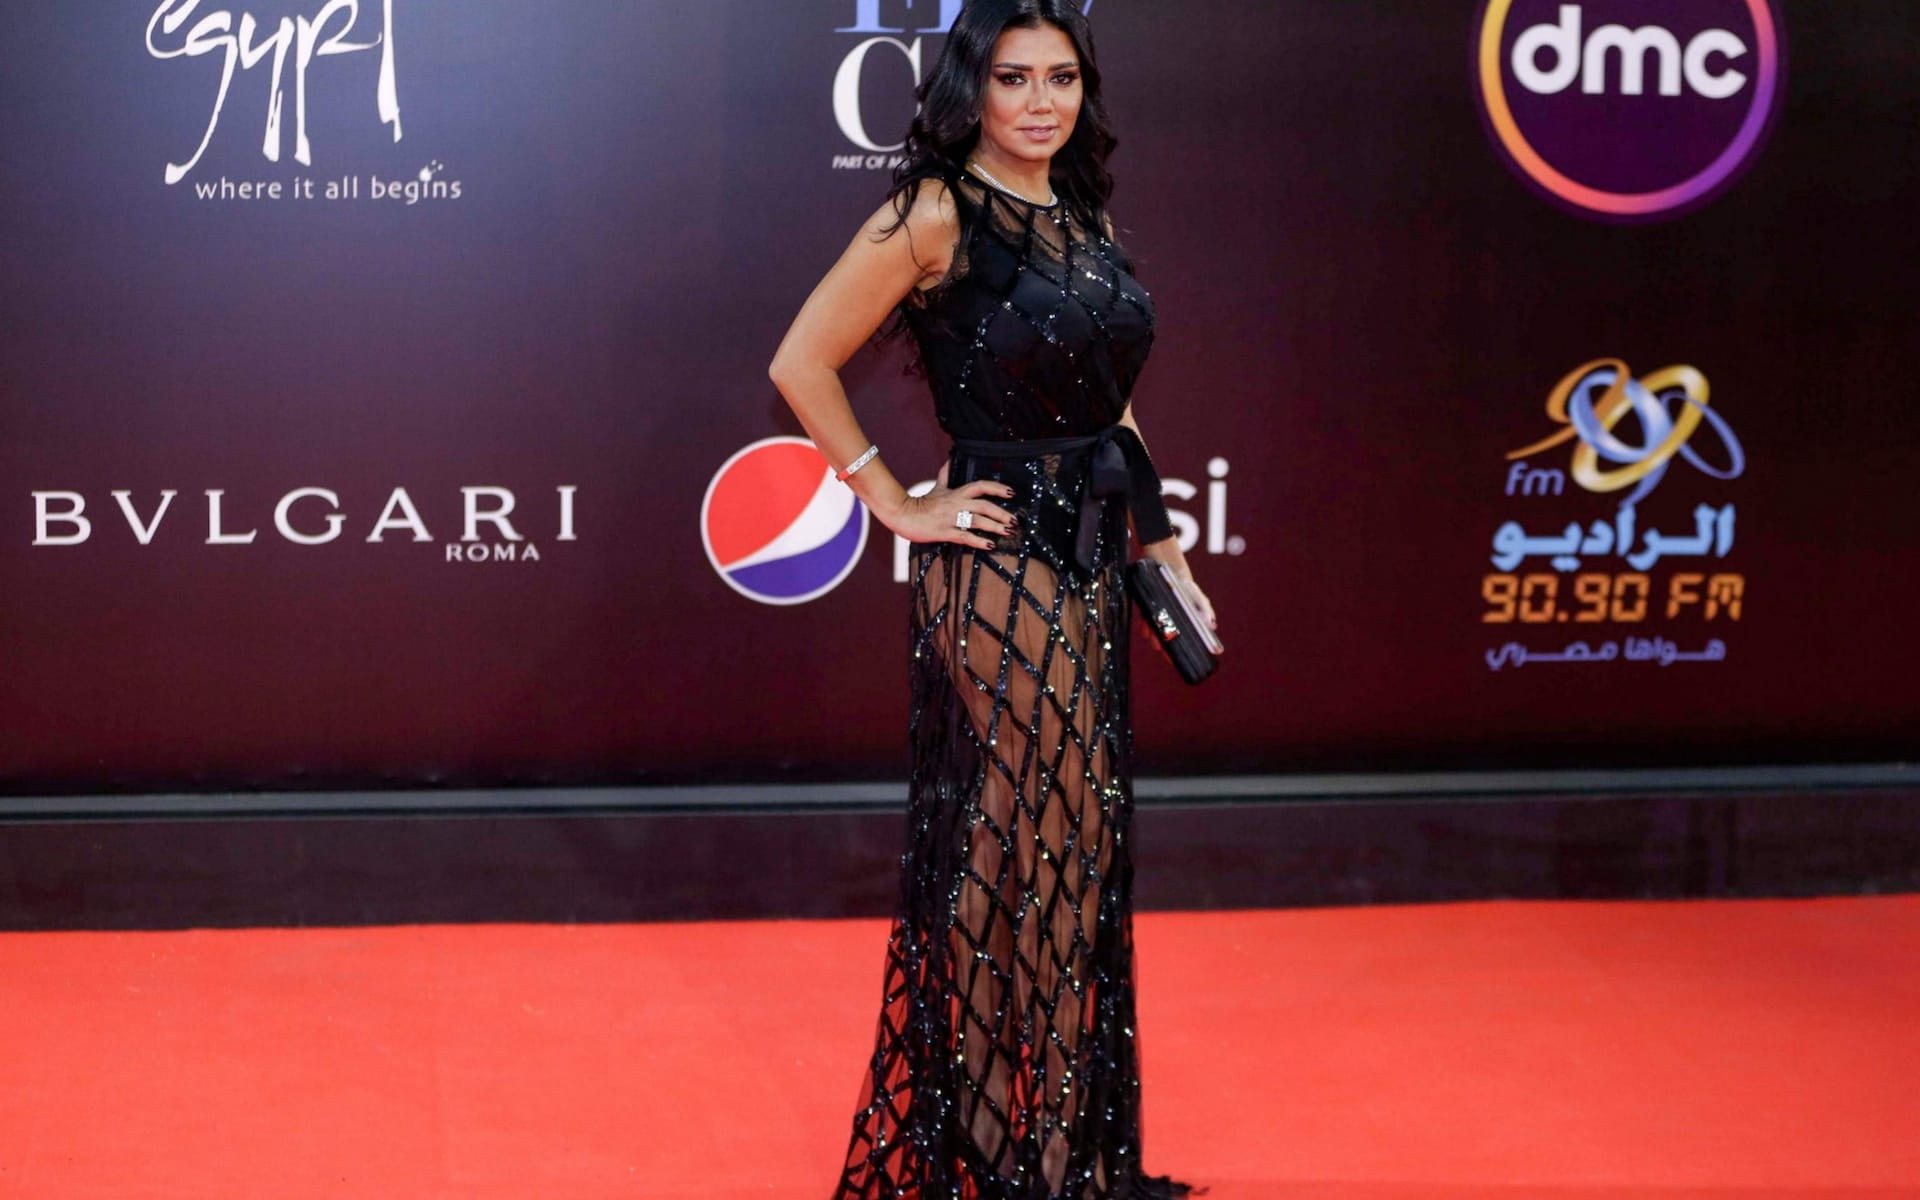 Egyptian actress faces obscenity charge for wearing see-through dress at film festival